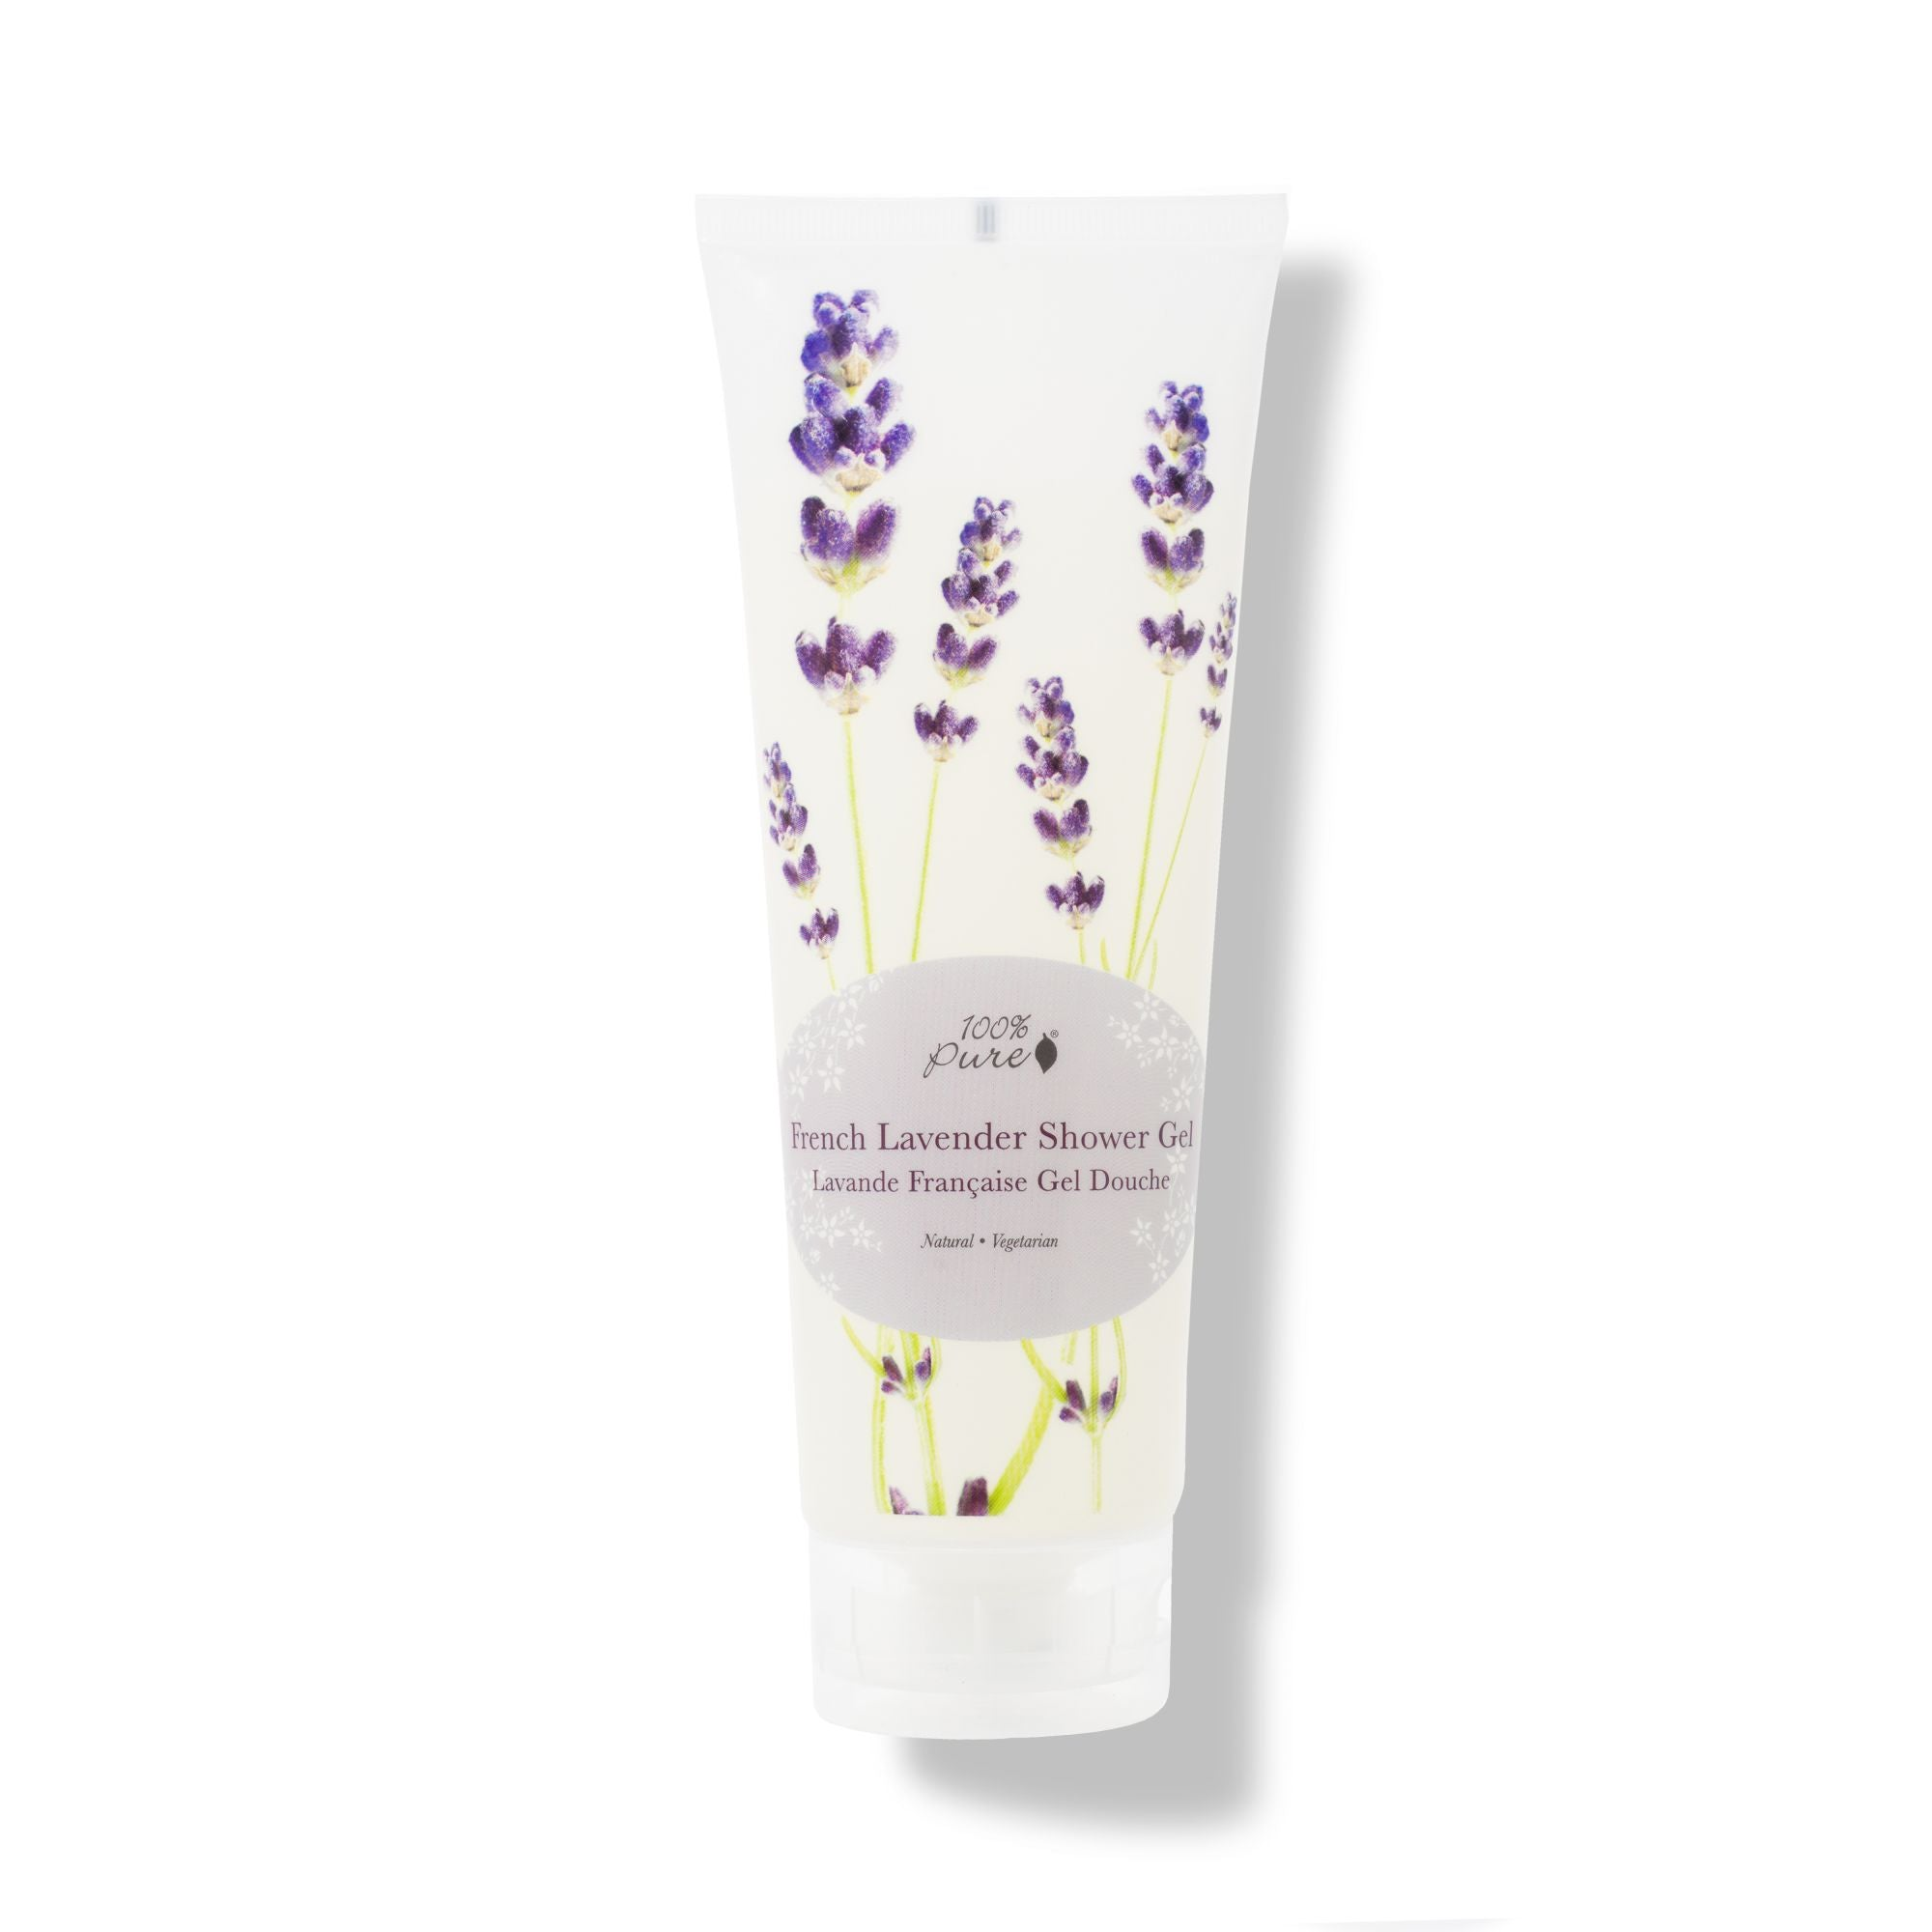 French Lavender Shower Gel